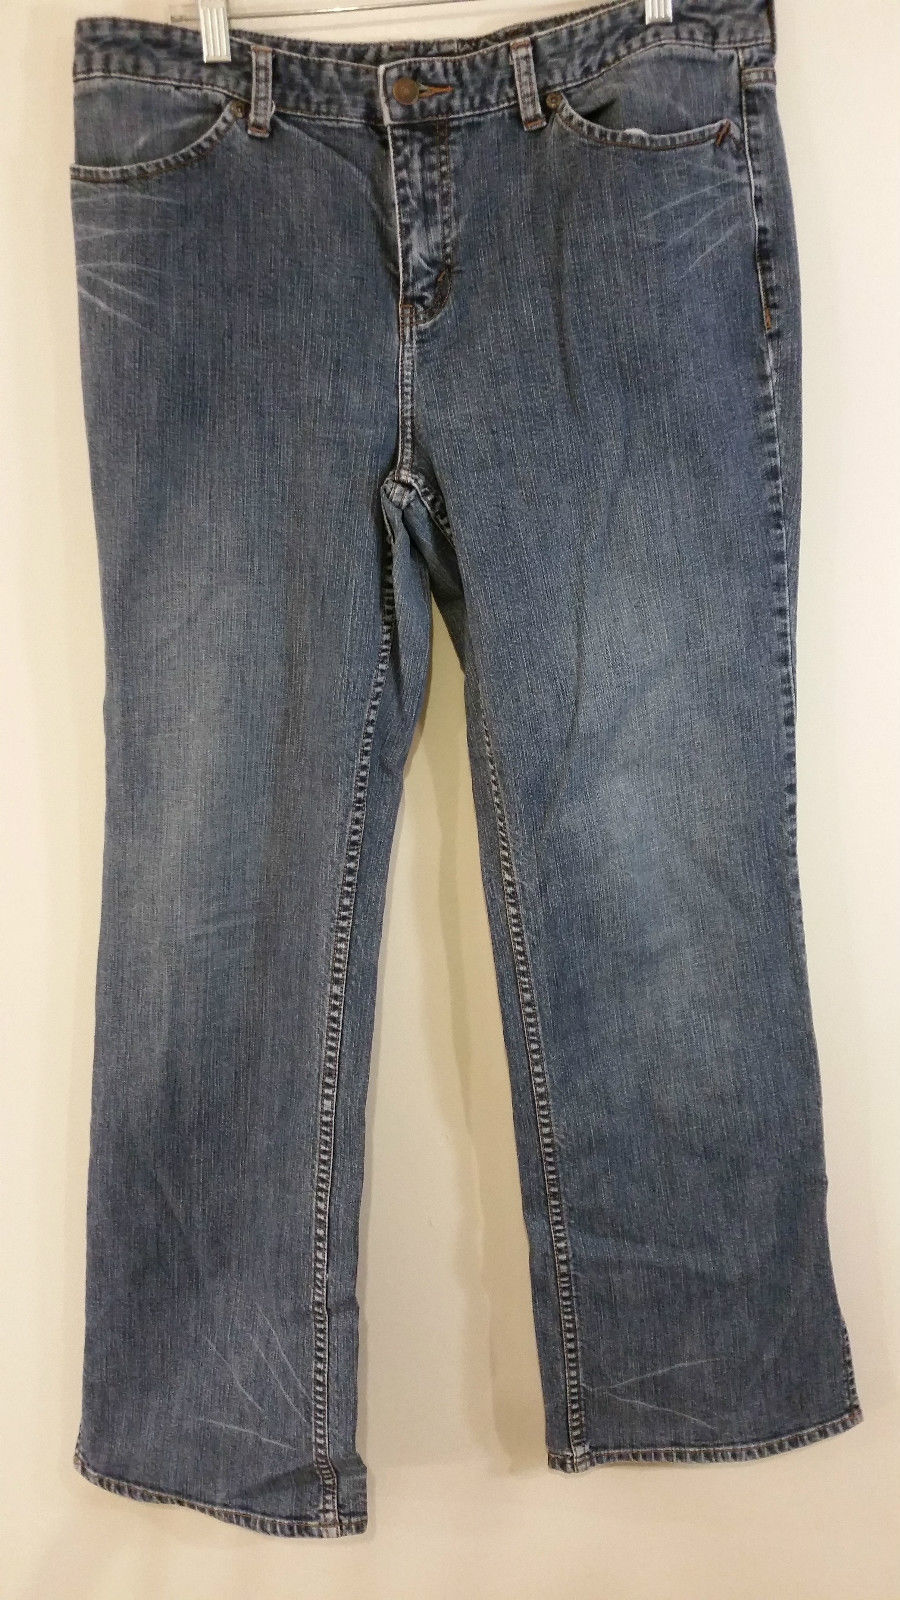 Eddie Bauer Dark Blue Stretch Jeans Front and Back Pockets Size 14